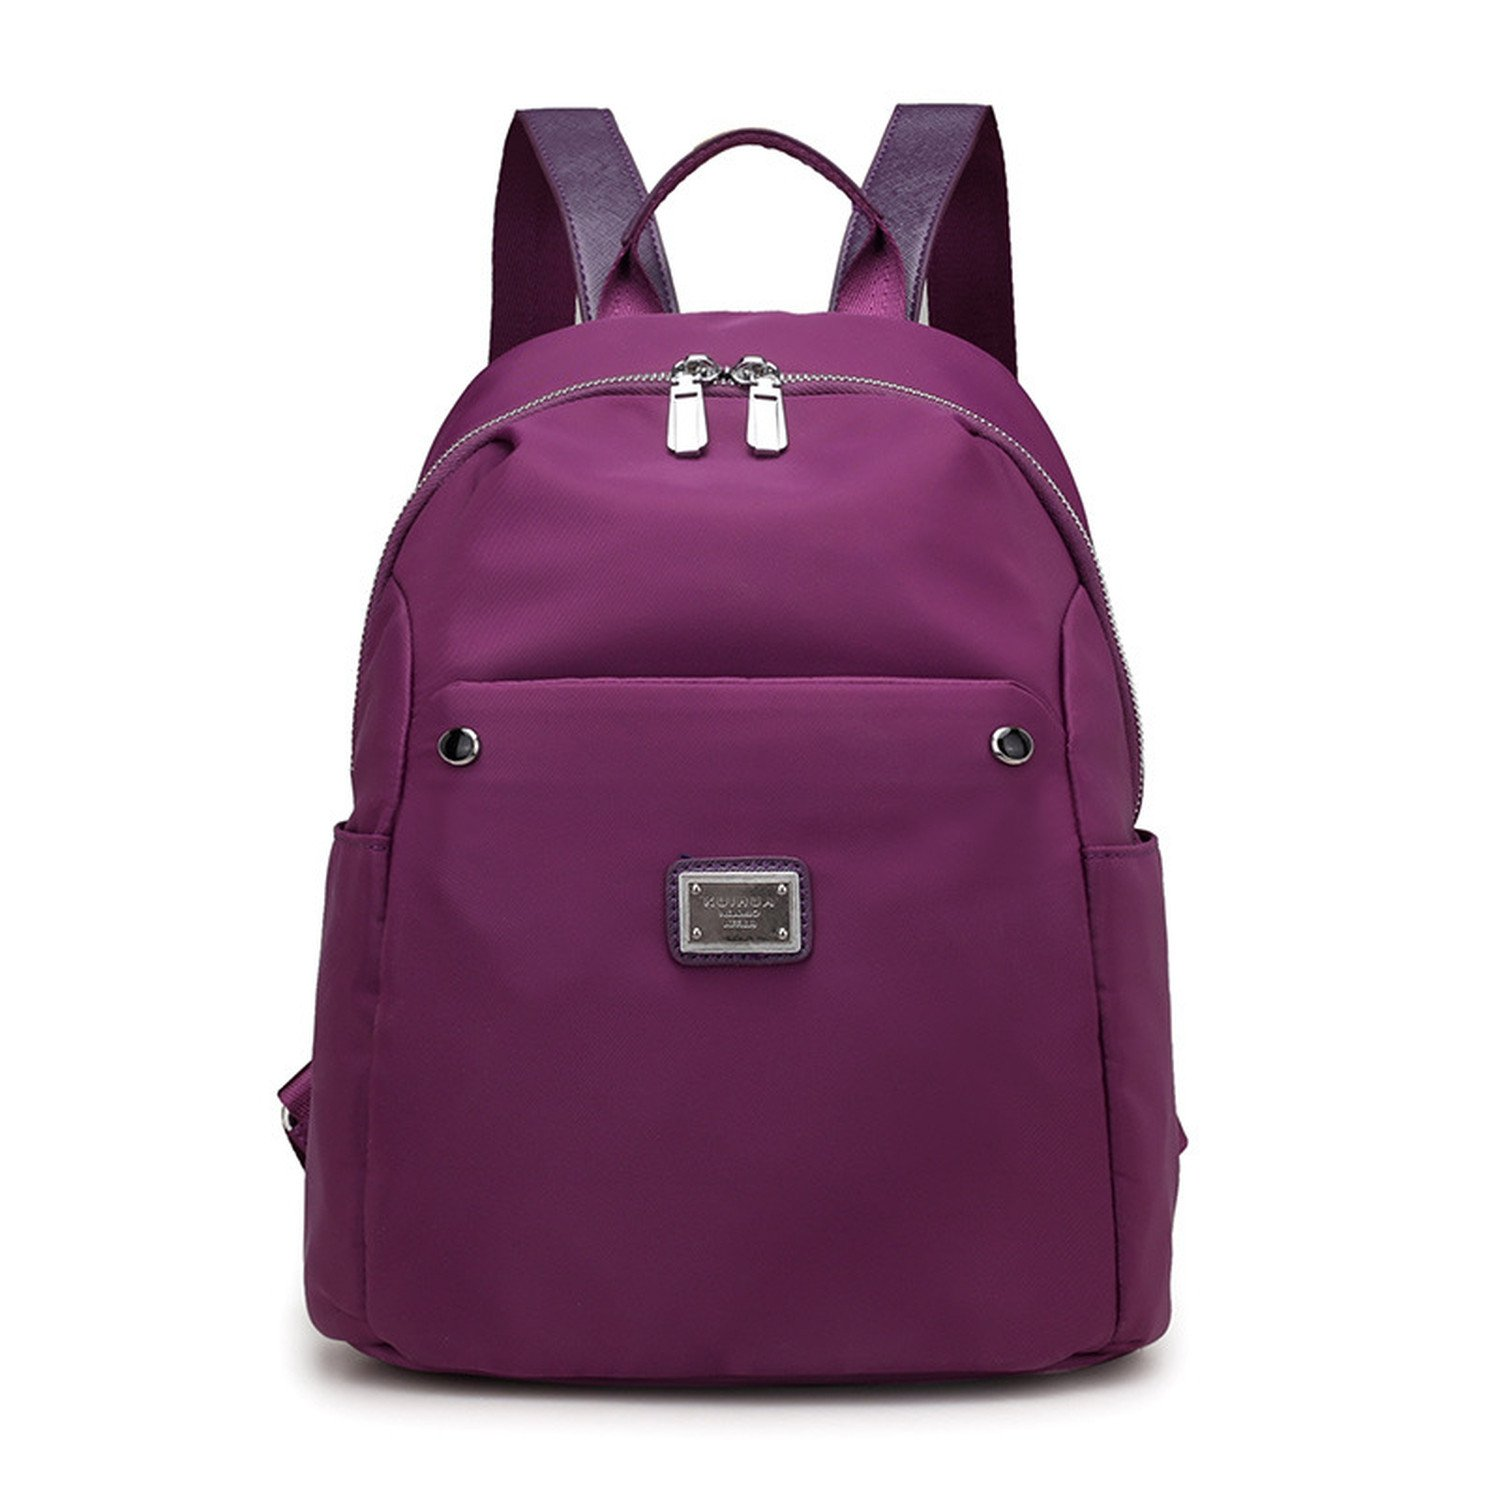 Leving Simple casual fashion shoulder bag female wild preppy backpack